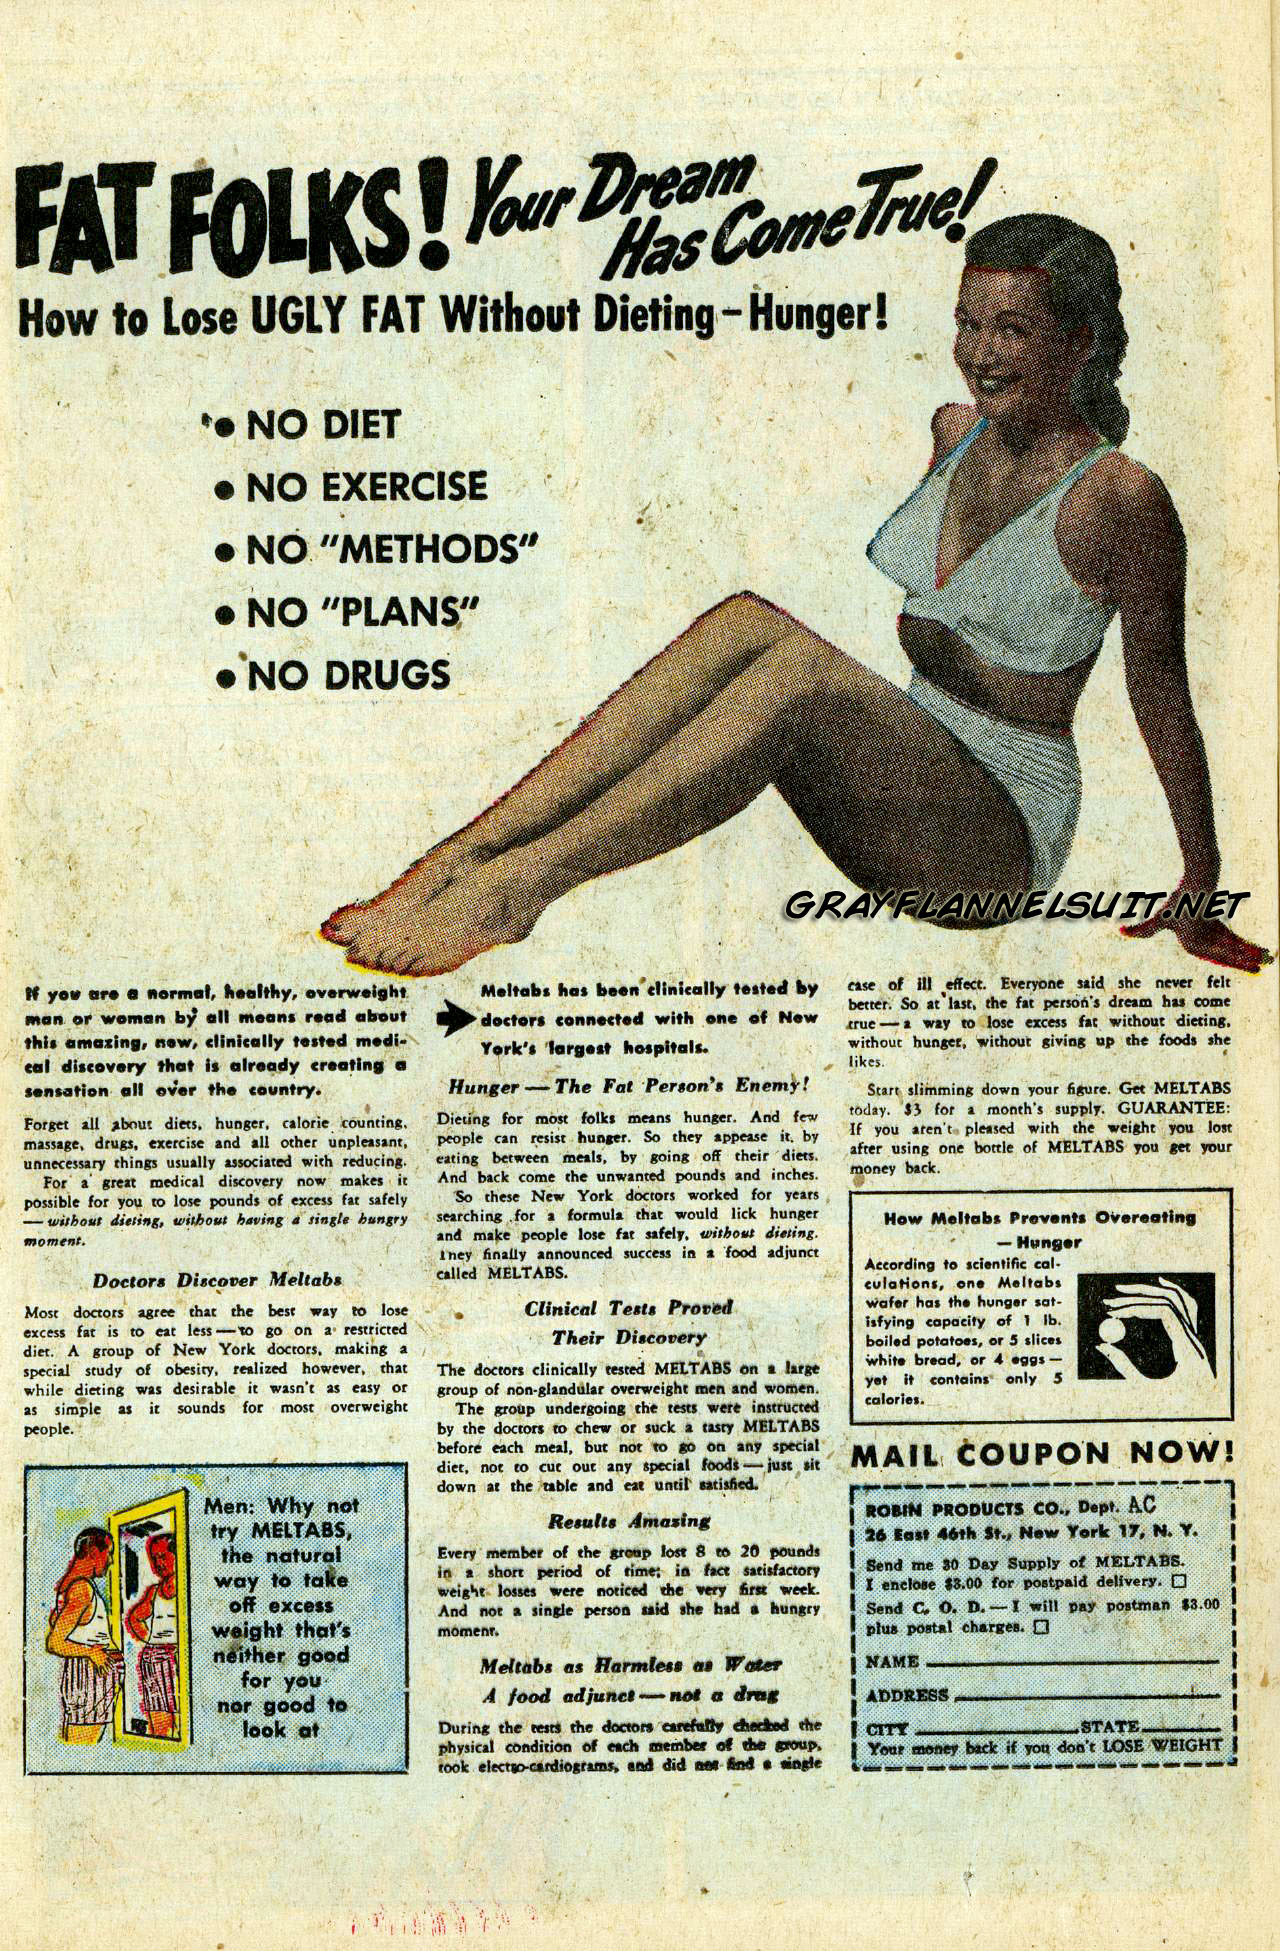 Meltabs weight loss ad, 1953